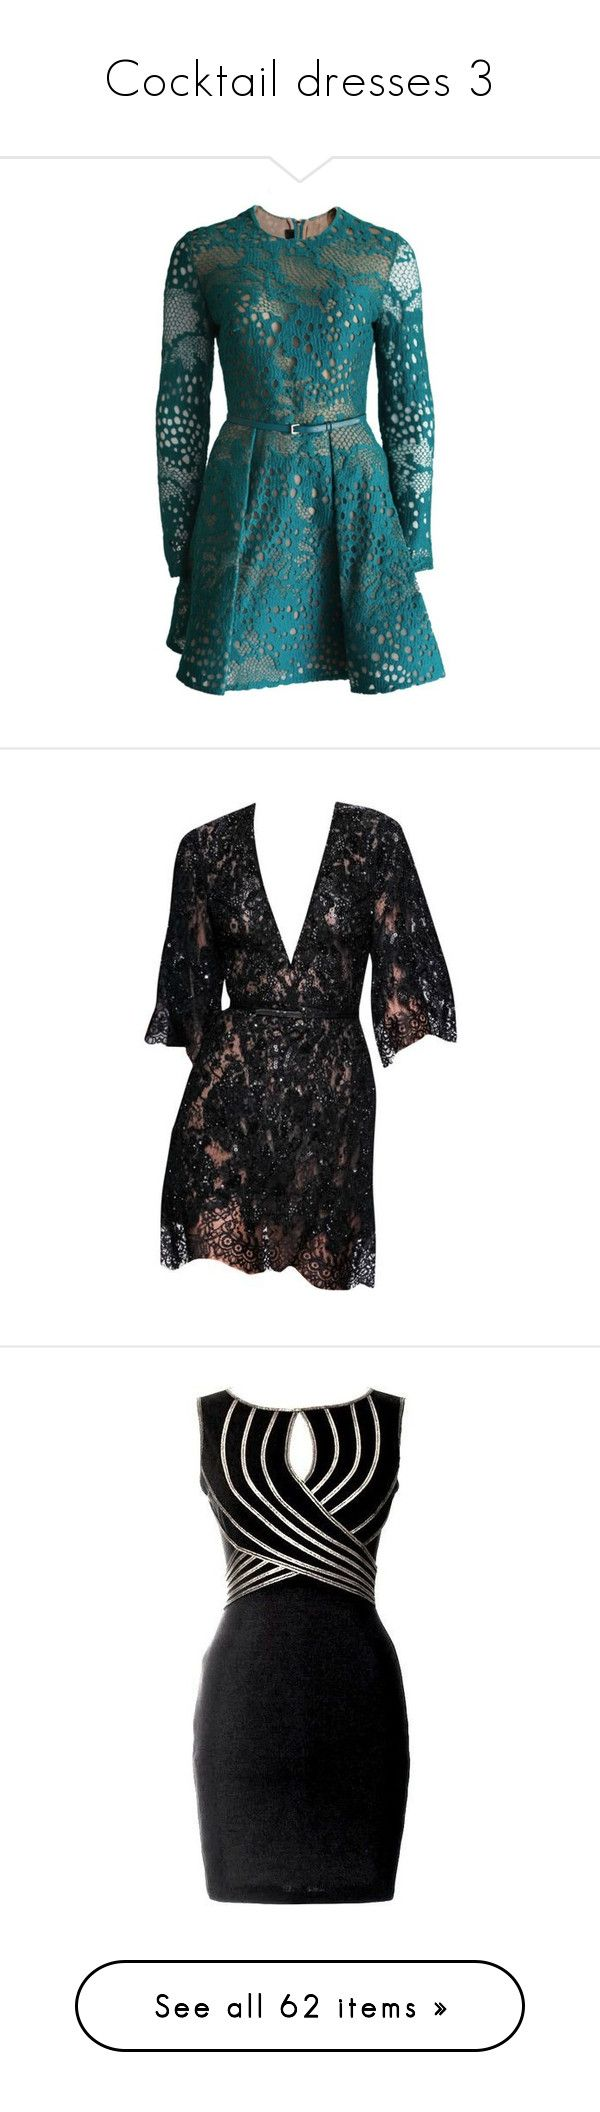 """""""Cocktail dresses 3"""" by joanna-tabakou ❤ liked on Polyvore featuring dresses, petrol, sleeved dresses, elie saab cocktail dress, blue dress, lace cocktail dresses, lace dress, white sleeve dress, long-sleeve mini dress and short dresses"""